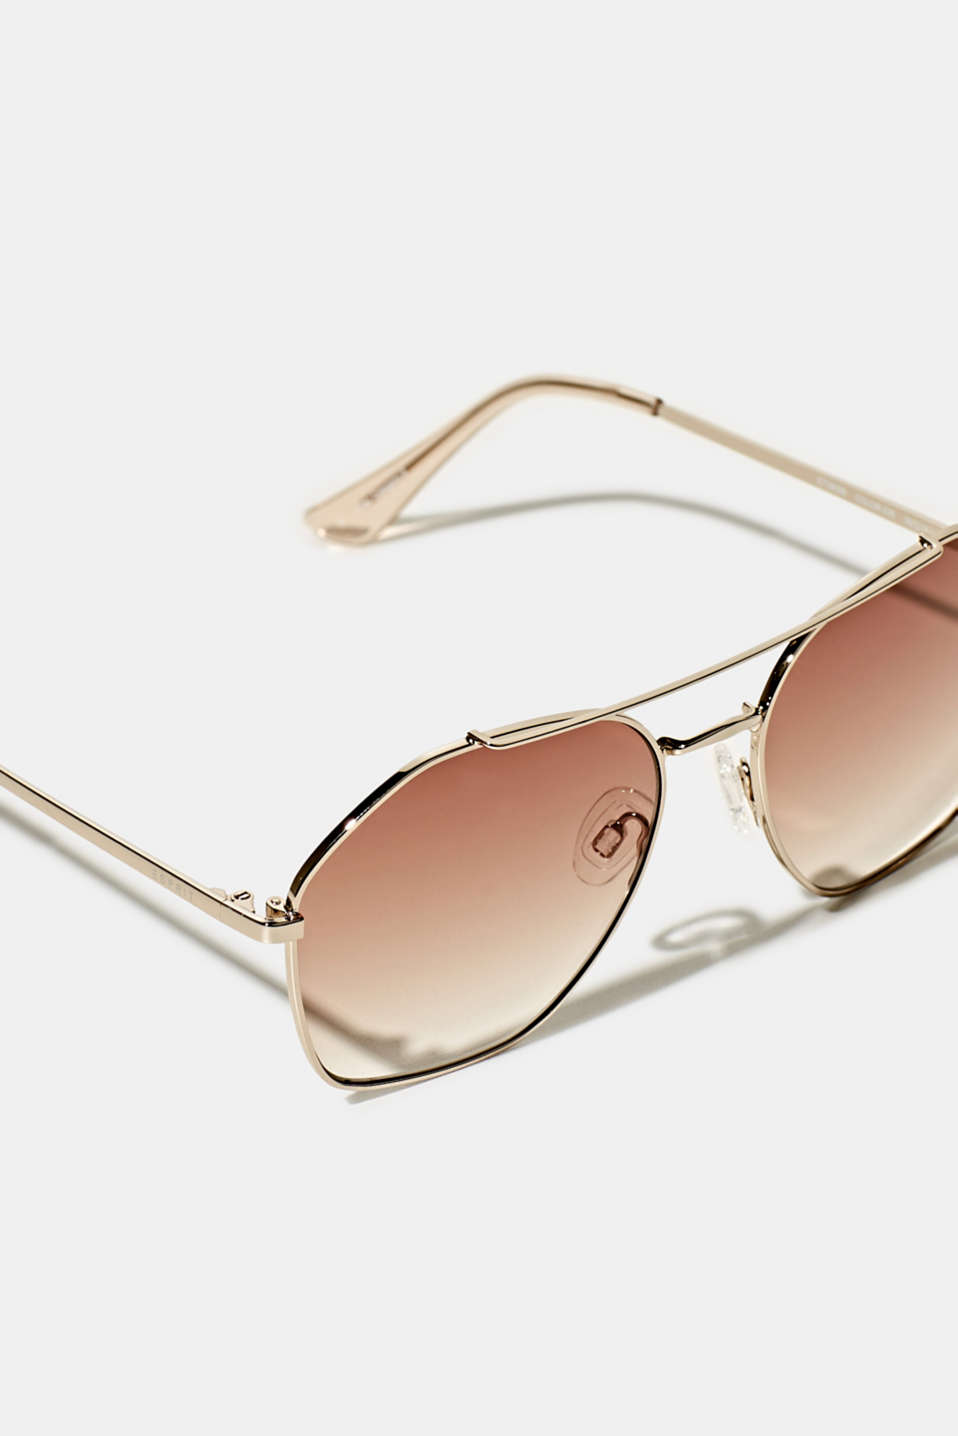 Sunglasses with metal frame, LCBROWN, detail image number 1